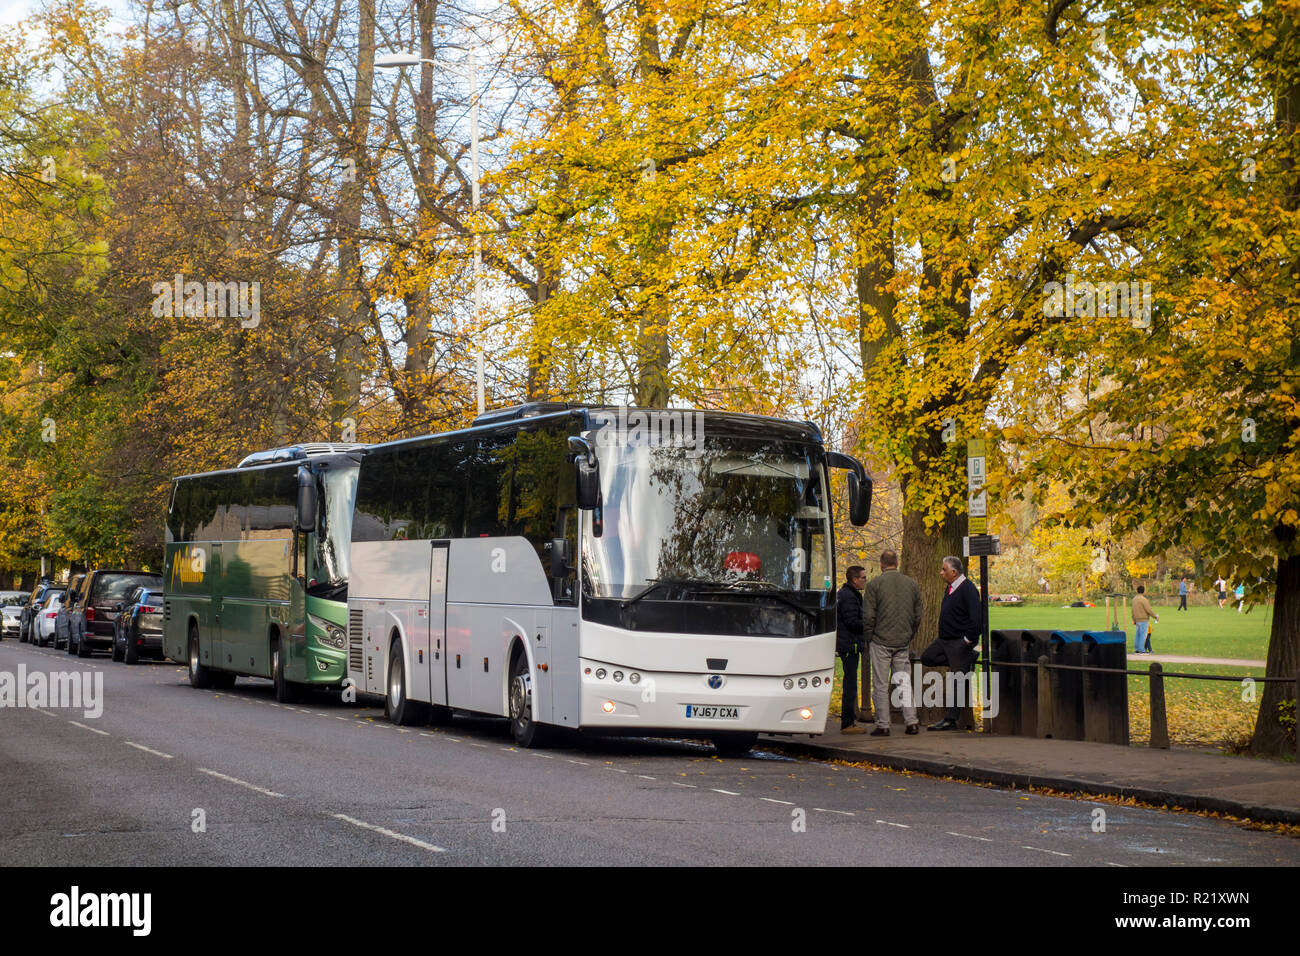 Tourist coaches and buses parked on The Backs in Cambridge, UK during Autumn - Stock Image